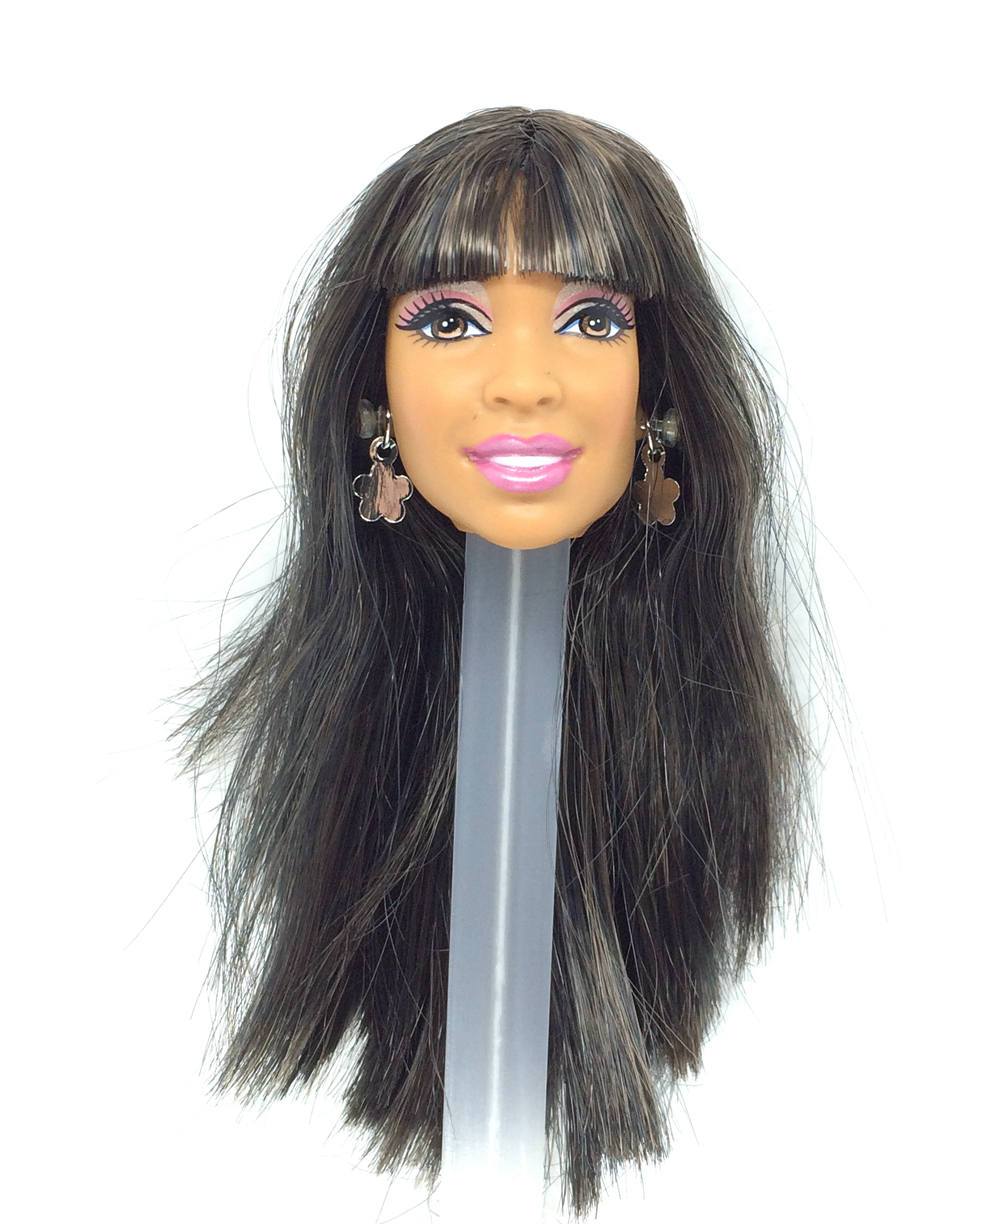 NK One Pcs Doll Head With Long Hait For 30 CM Doll Fit  For 1/6 Doll Accessories  Best DIY Gift For Girls'  Doll 010 6X